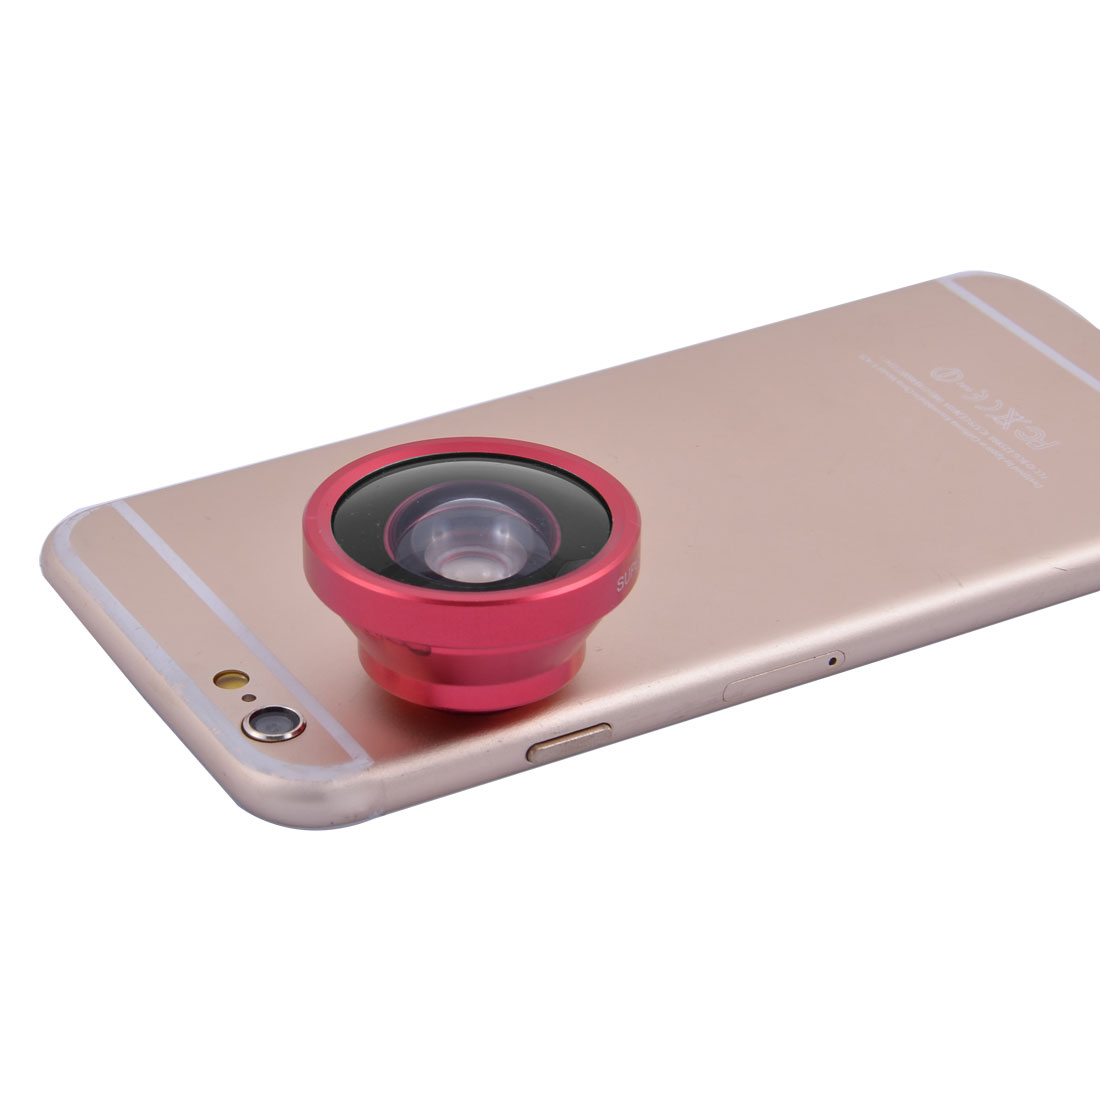 Smartphone Clip HD Super Wide 0.4X Angle Selfie Cam Lens Red for Mobile Phone